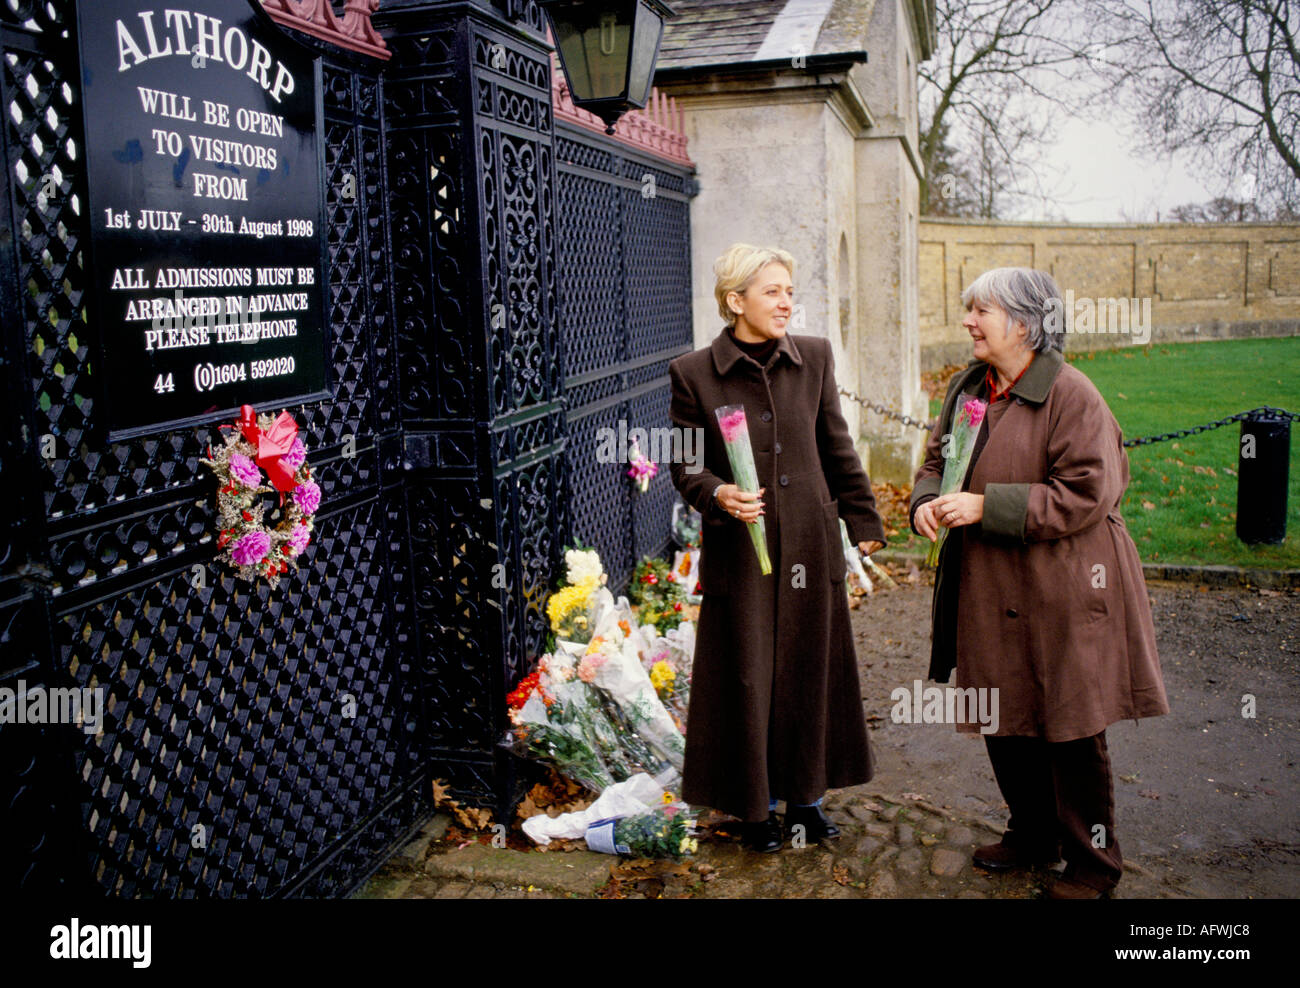 VISITORS LEAVING FLORAL TRIBUTES TO DIANA PRINCESS OF  WALES AT THE GATES OF ALTHORP HOUSE 1997  NORTHAMPTONSHIRE - Stock Image